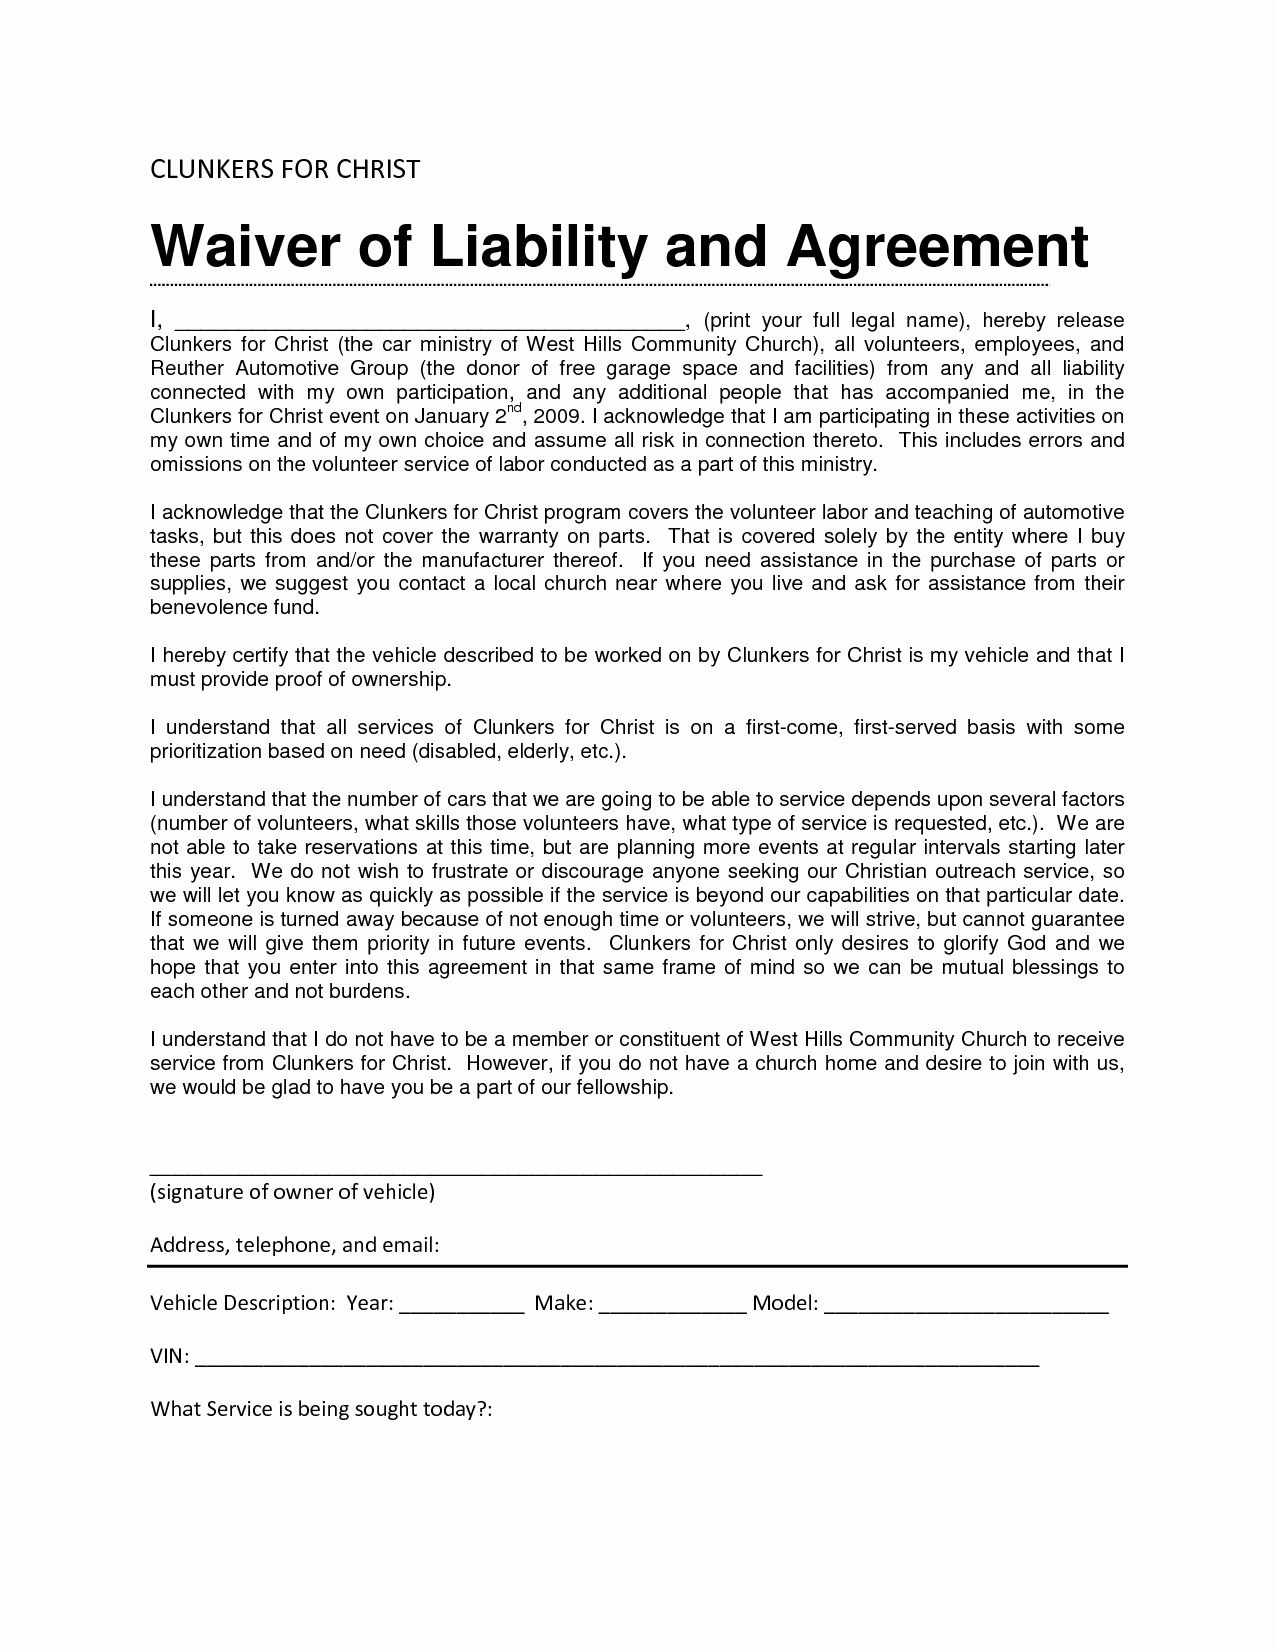 Yoga Release Forms Awesome Free Yoga Liability Waiver Form Legal Forms General Liability Liability Waiver